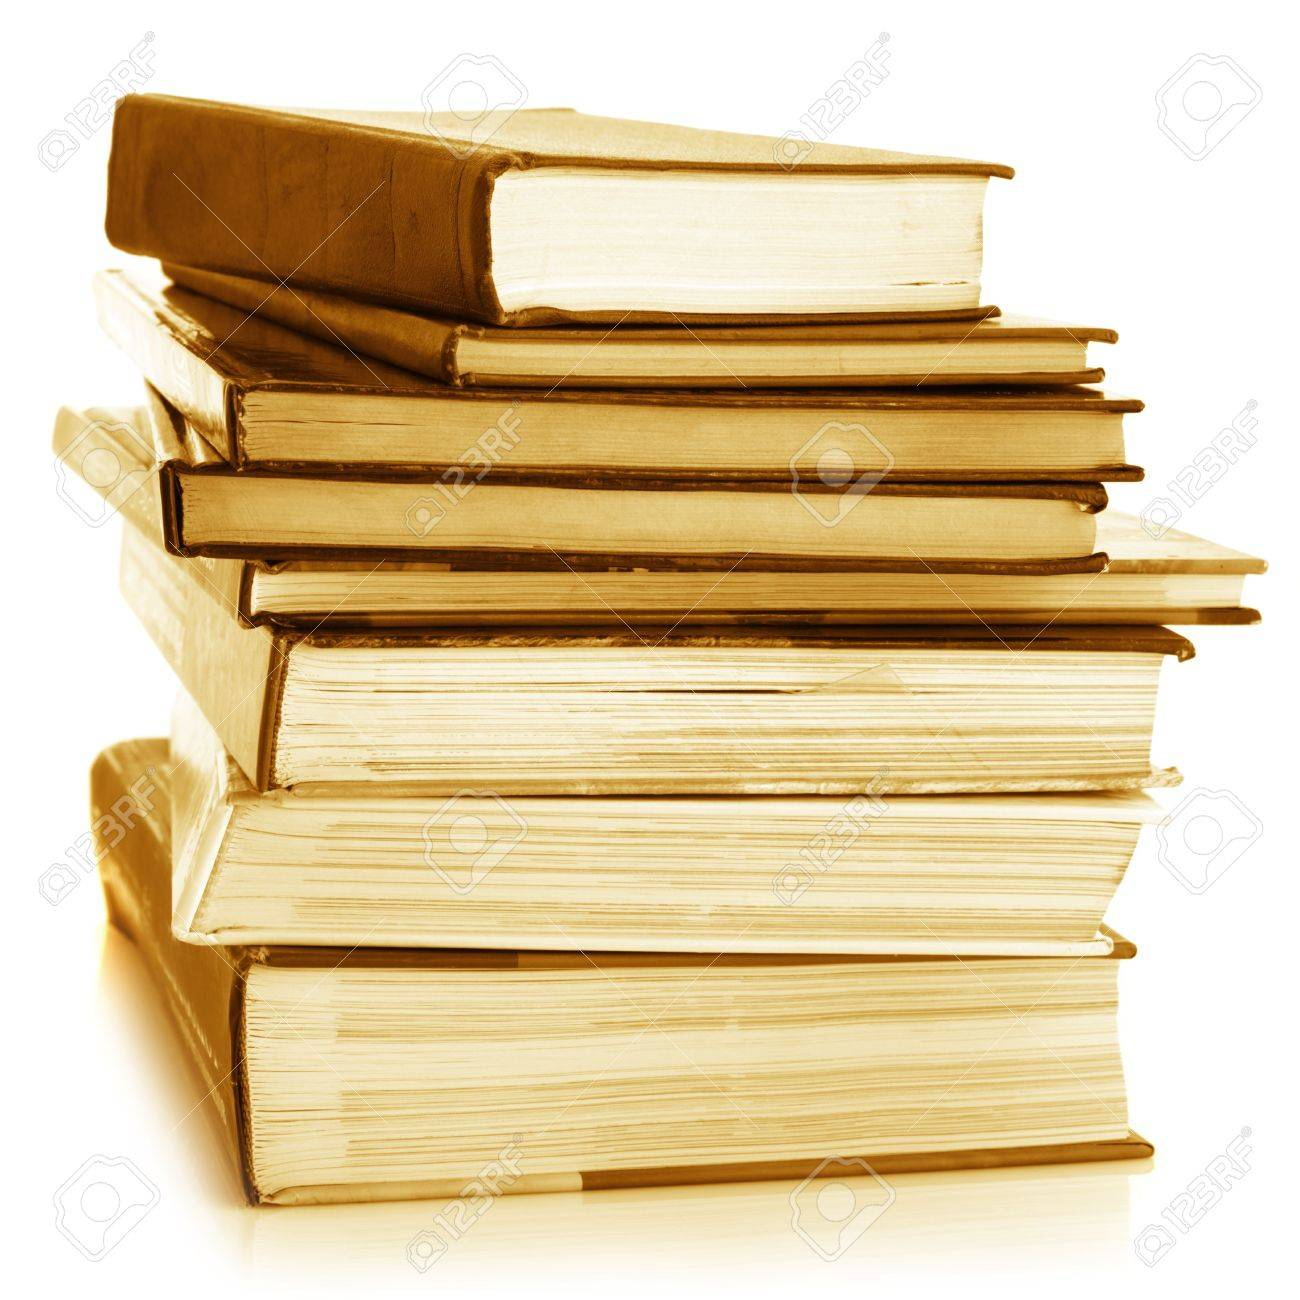 Stack of various books isolated on white background. Toned image. Stock Photo - 9099177